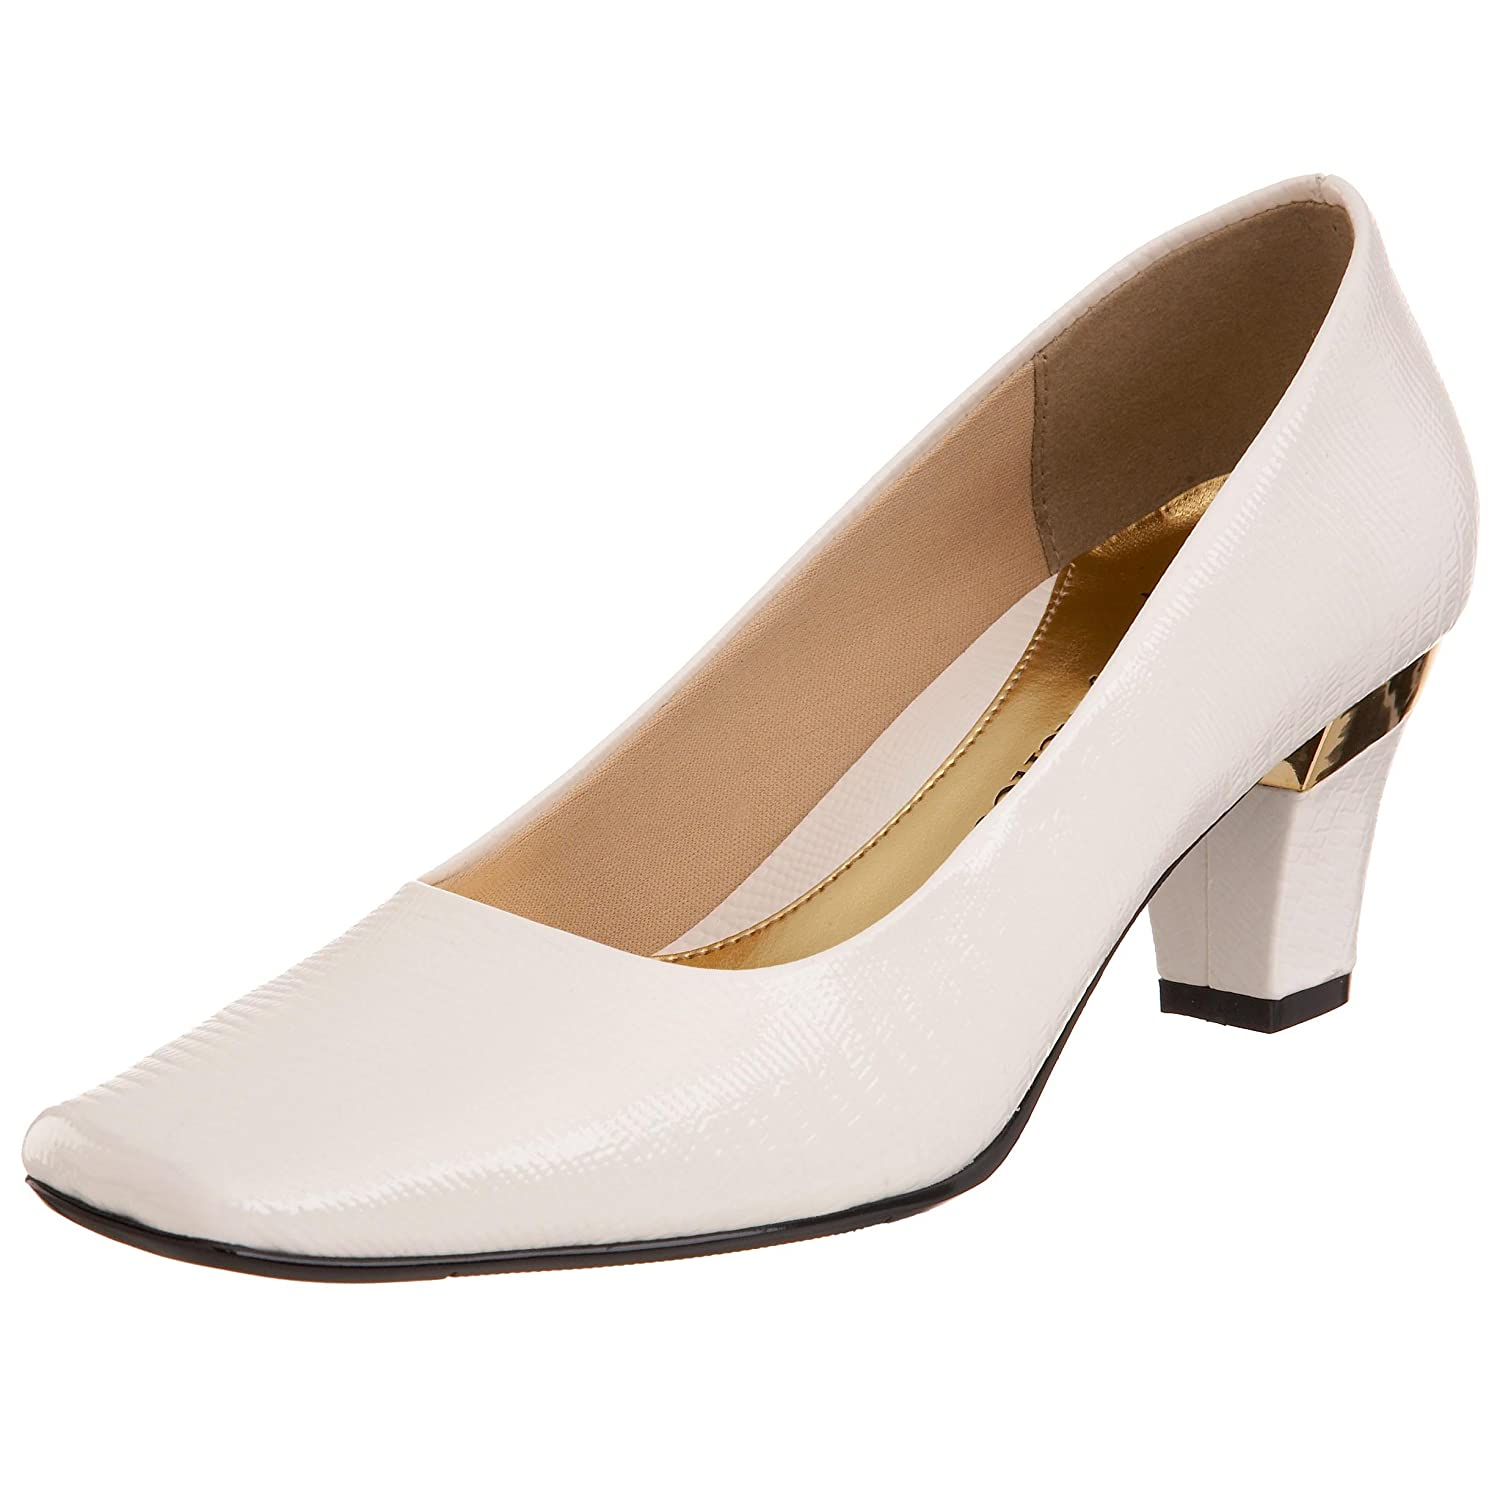 J.Renee Women's Mary Pump B002DPV22K 13 B(M) US|White